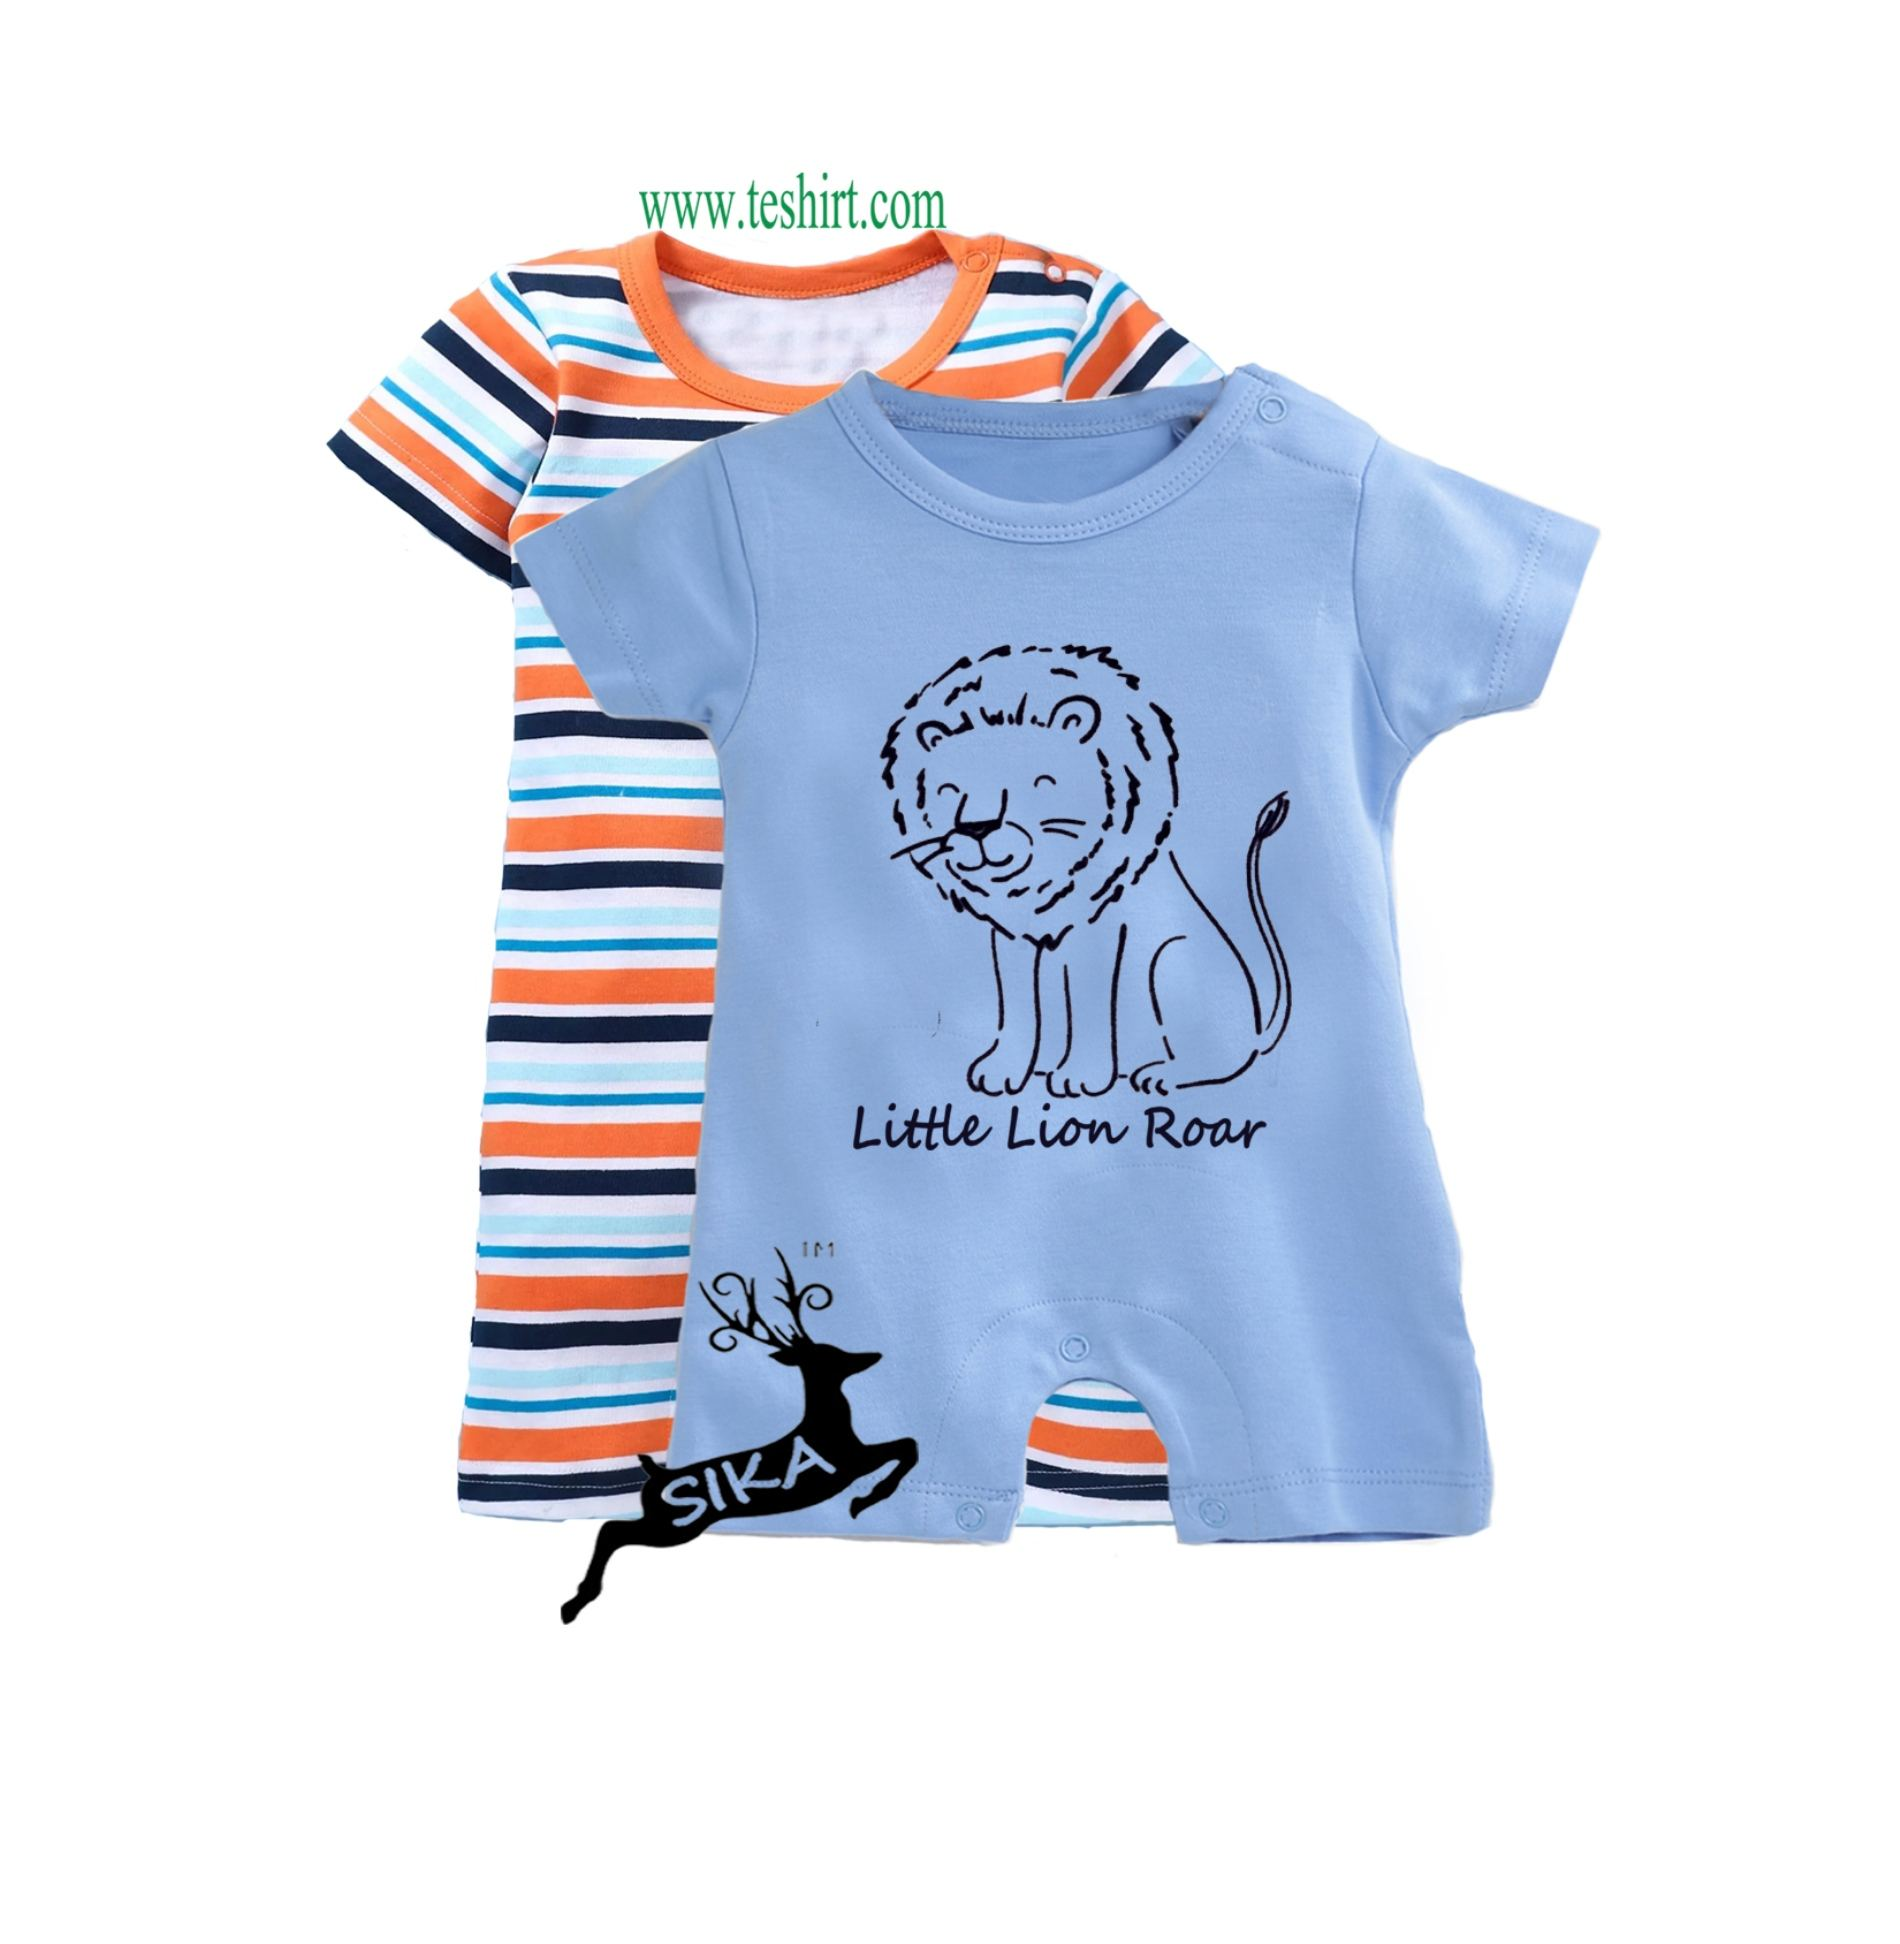 2019 tirupur SUPPLIER High quality cotton clothes wholesale baby blank 100% cotton clothing baby onesie summer newborn baby c